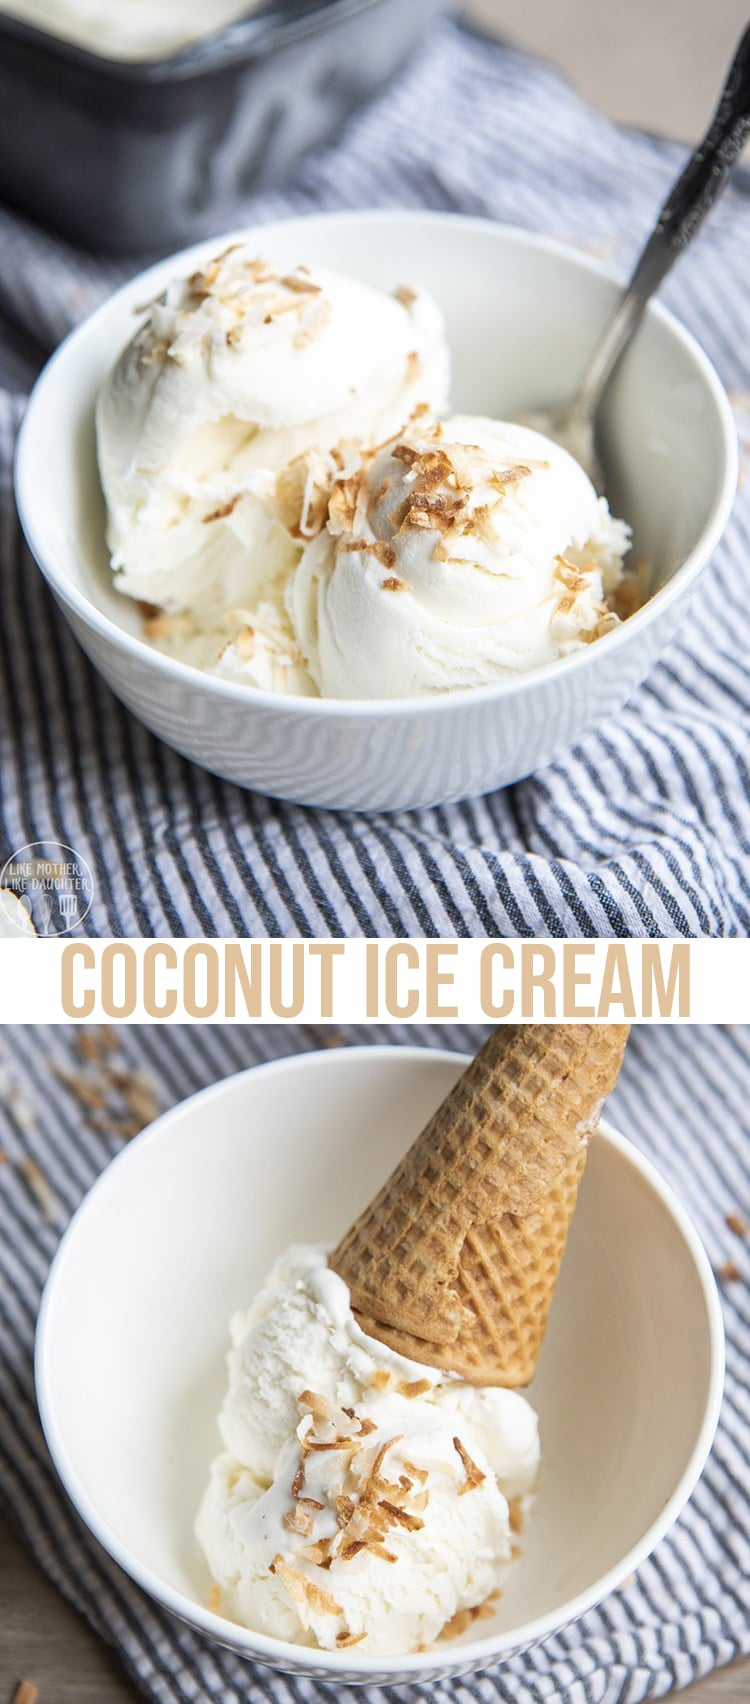 This coconut ice cream is so creamy, refreshing, sweet and delicious! It's only 4 ingredients, and has the perfect rich coconut flavor!